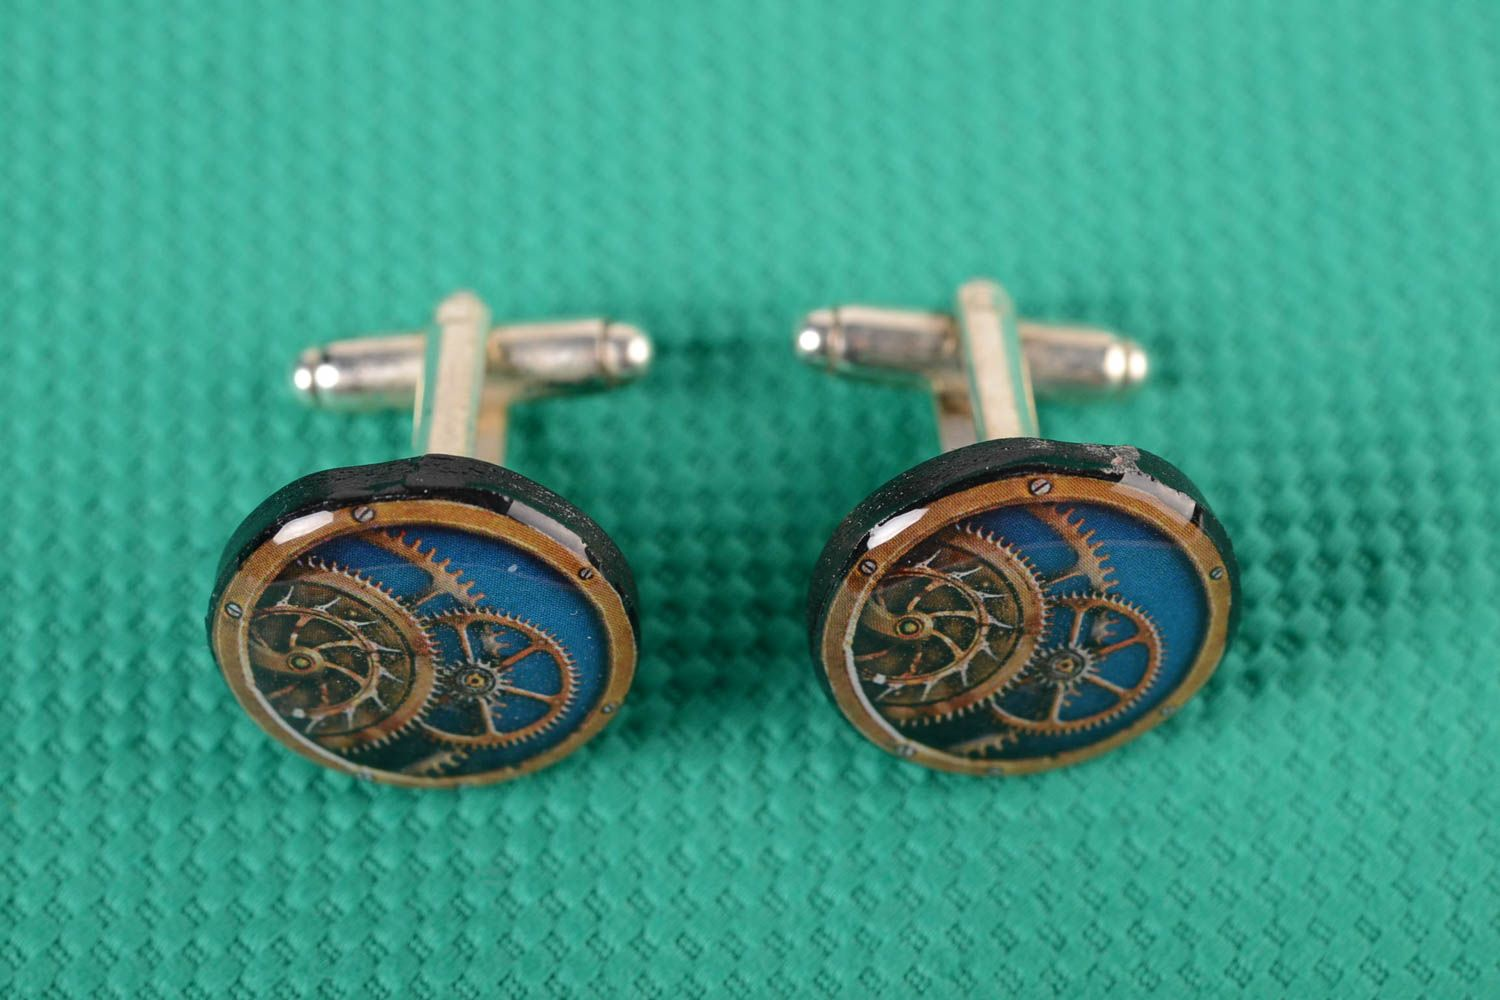 cufflinks Interesting French cuffs for men unusual shirt accessory for women designer gift - MADEheart.com